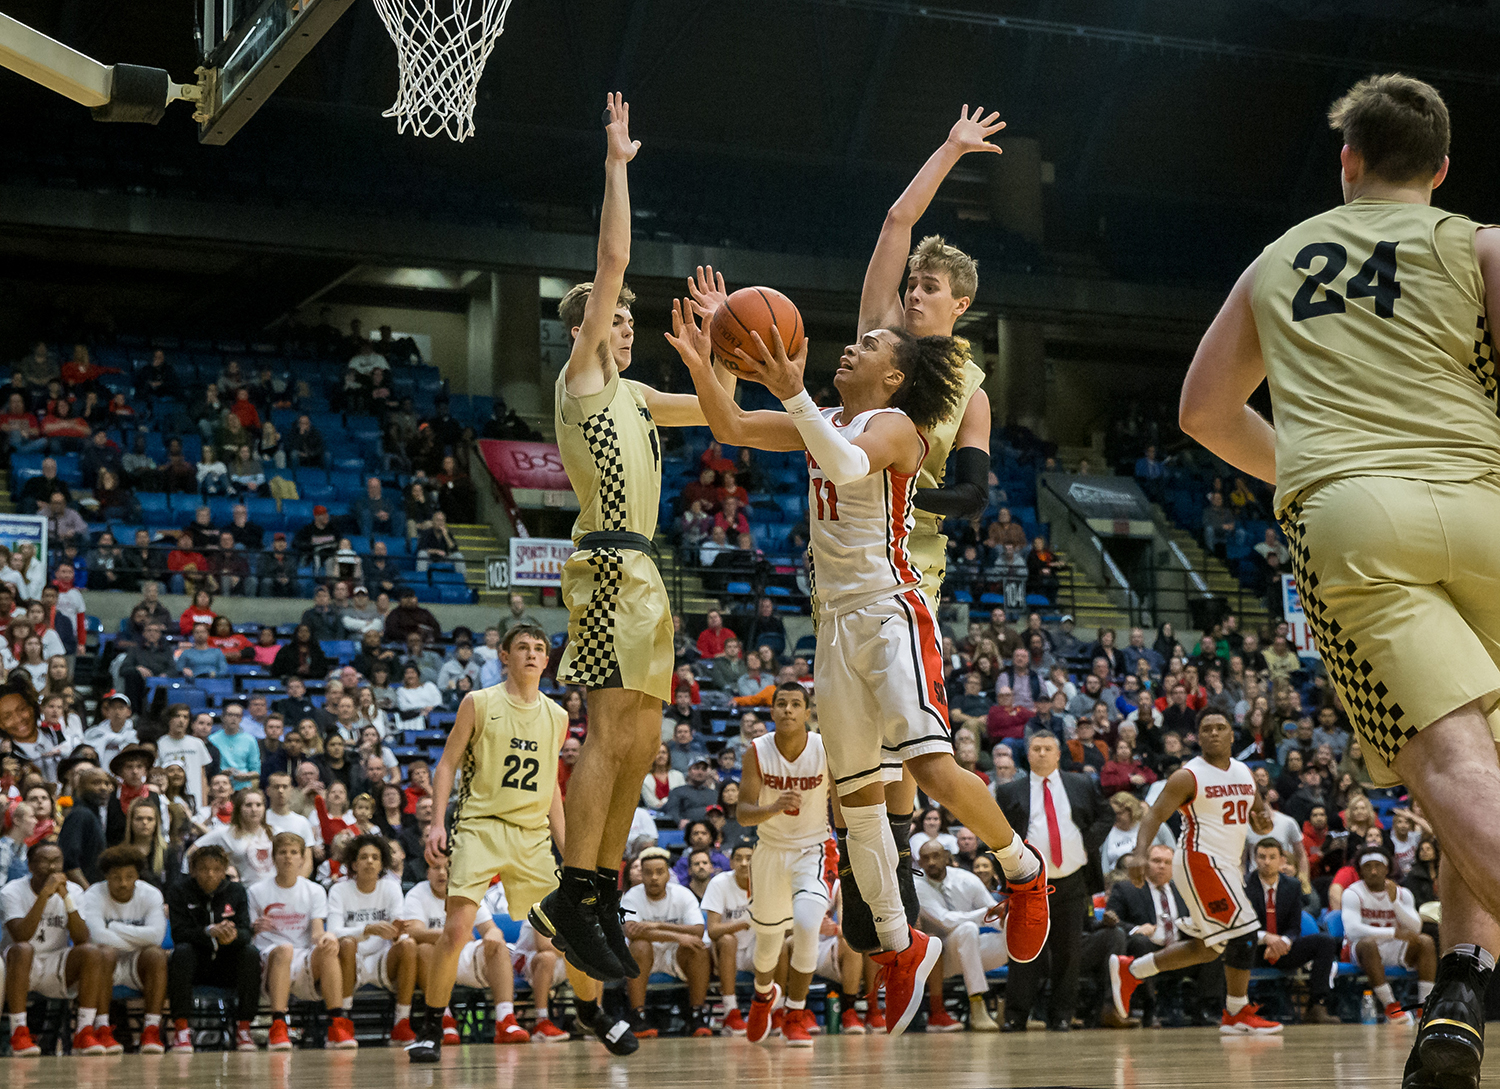 Springfield's Zaire Harris (11) drives up to the basket against Sacred Heart-Griffin's Joe Gustafson (2) and Sacred Heart-Griffin's Charlie Hamilton (4) in the fourth quarter on opening night of the Boys City Tournament at the Bank of Springfield Center, Wednesday, Jan. 16, 2019, in Springfield, Ill. [Justin L. Fowler/The State Journal-Register]